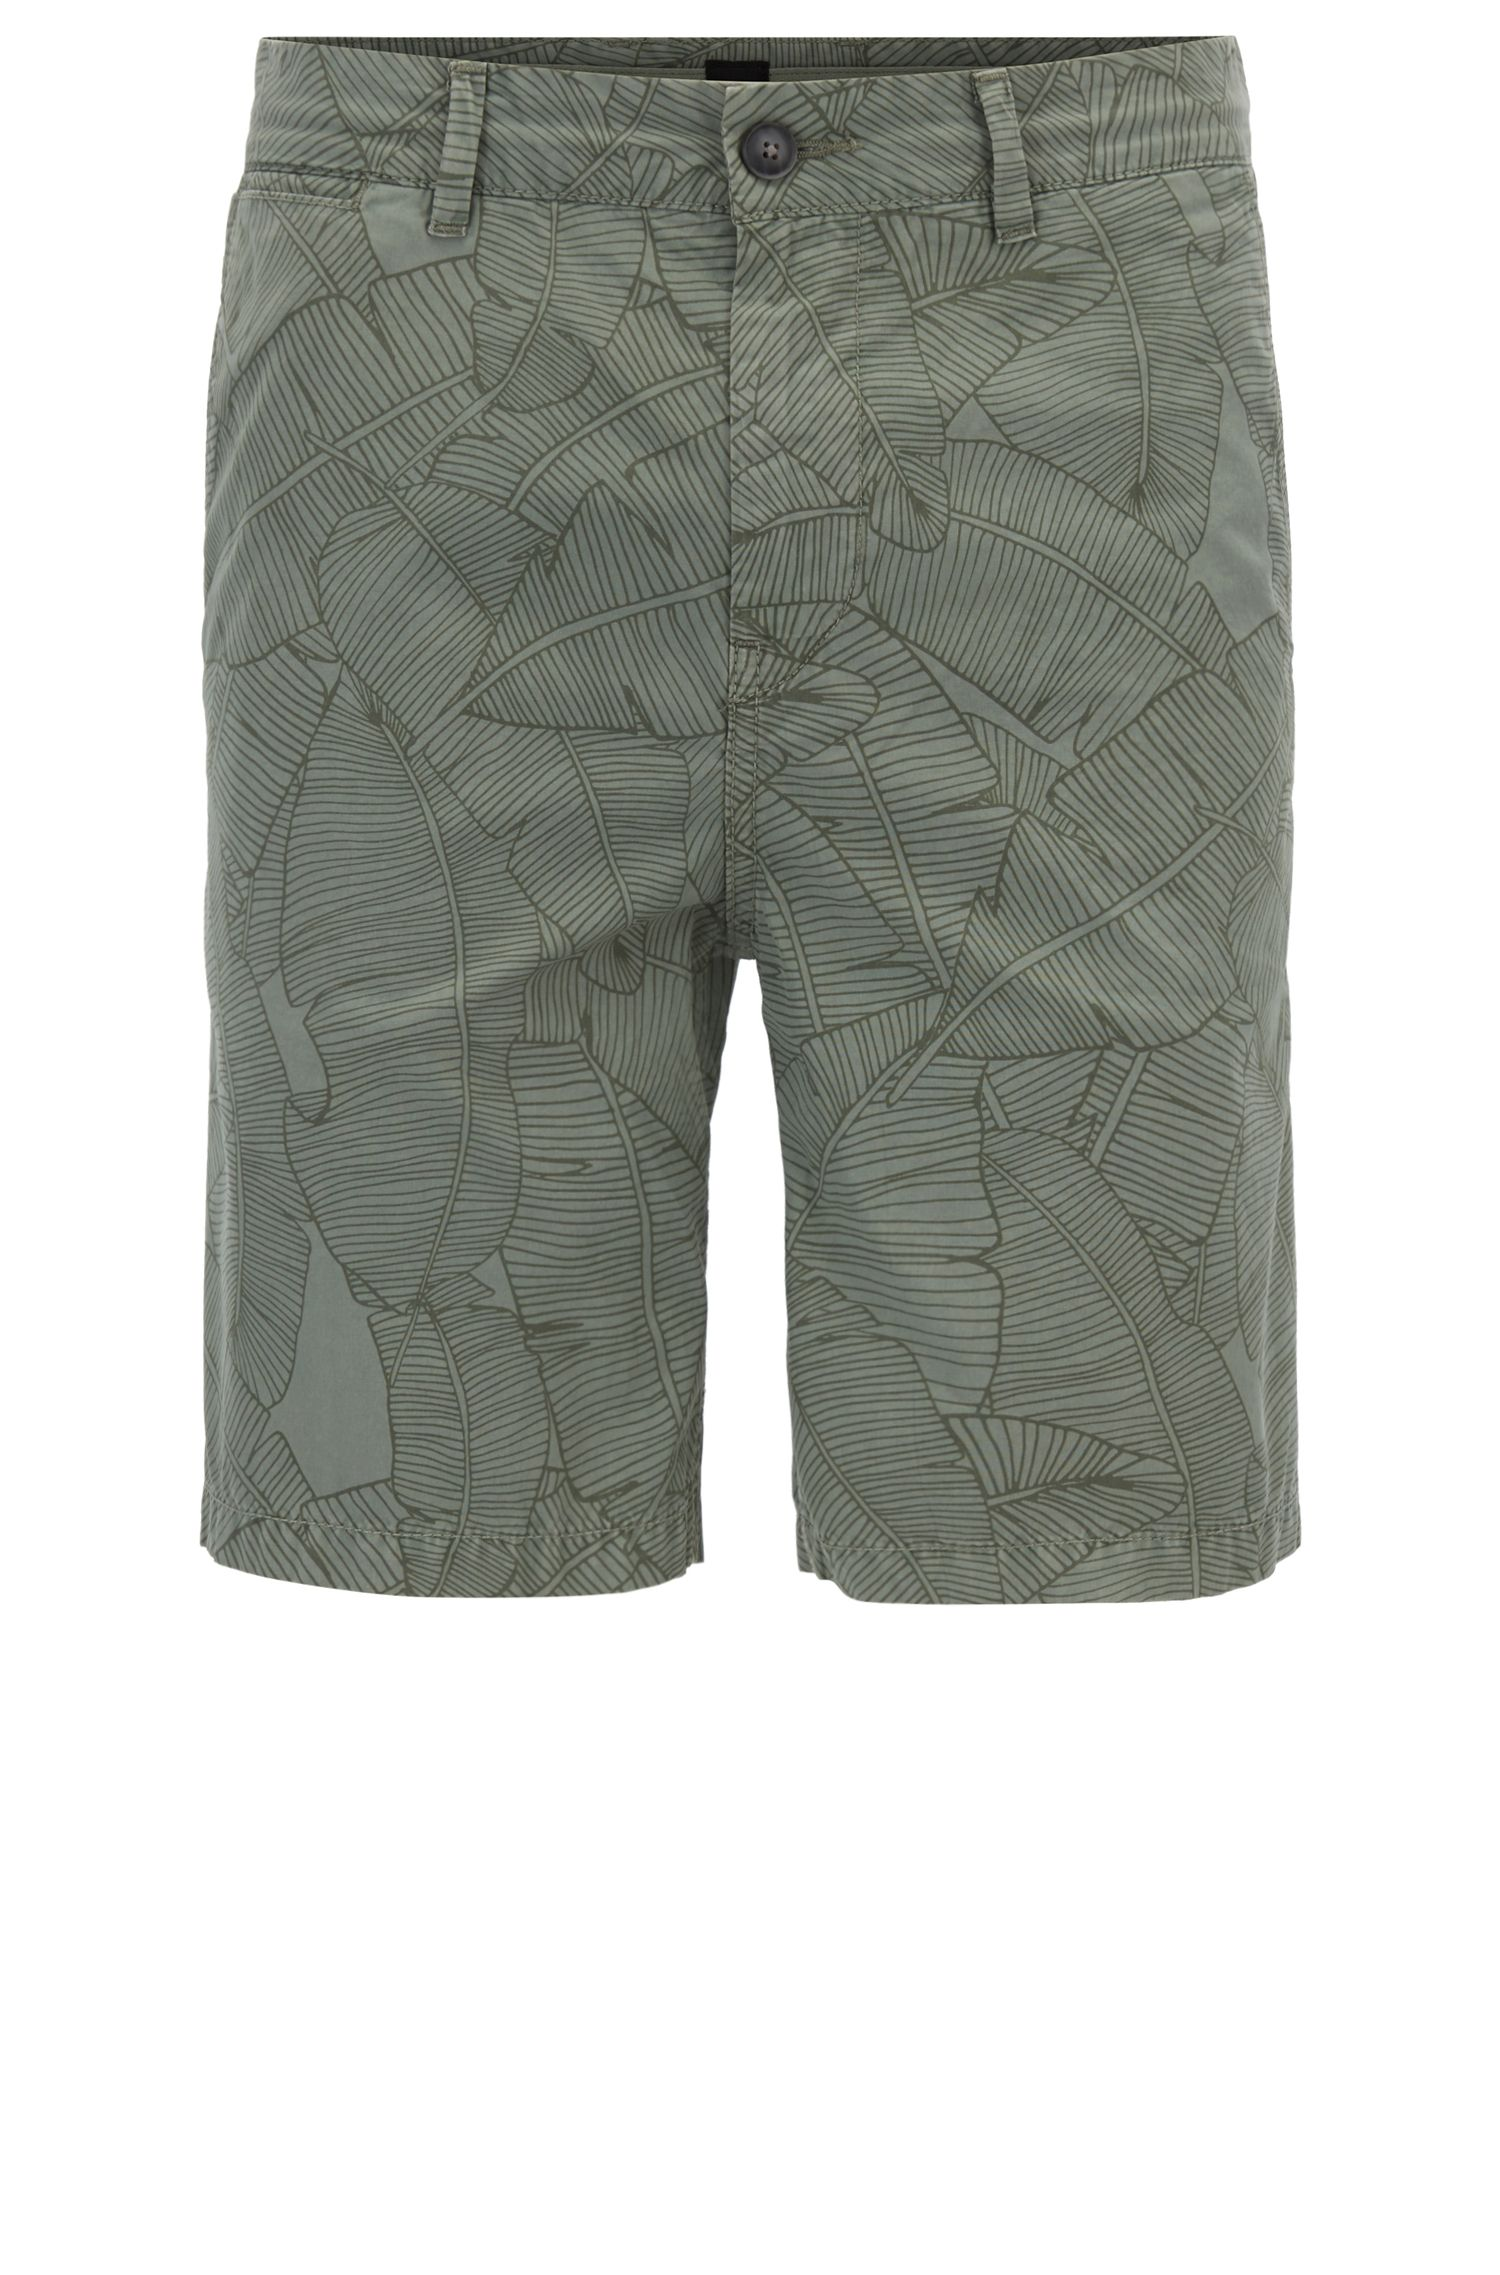 Shorts de algodón tapered fit con estampado de hoja de banano